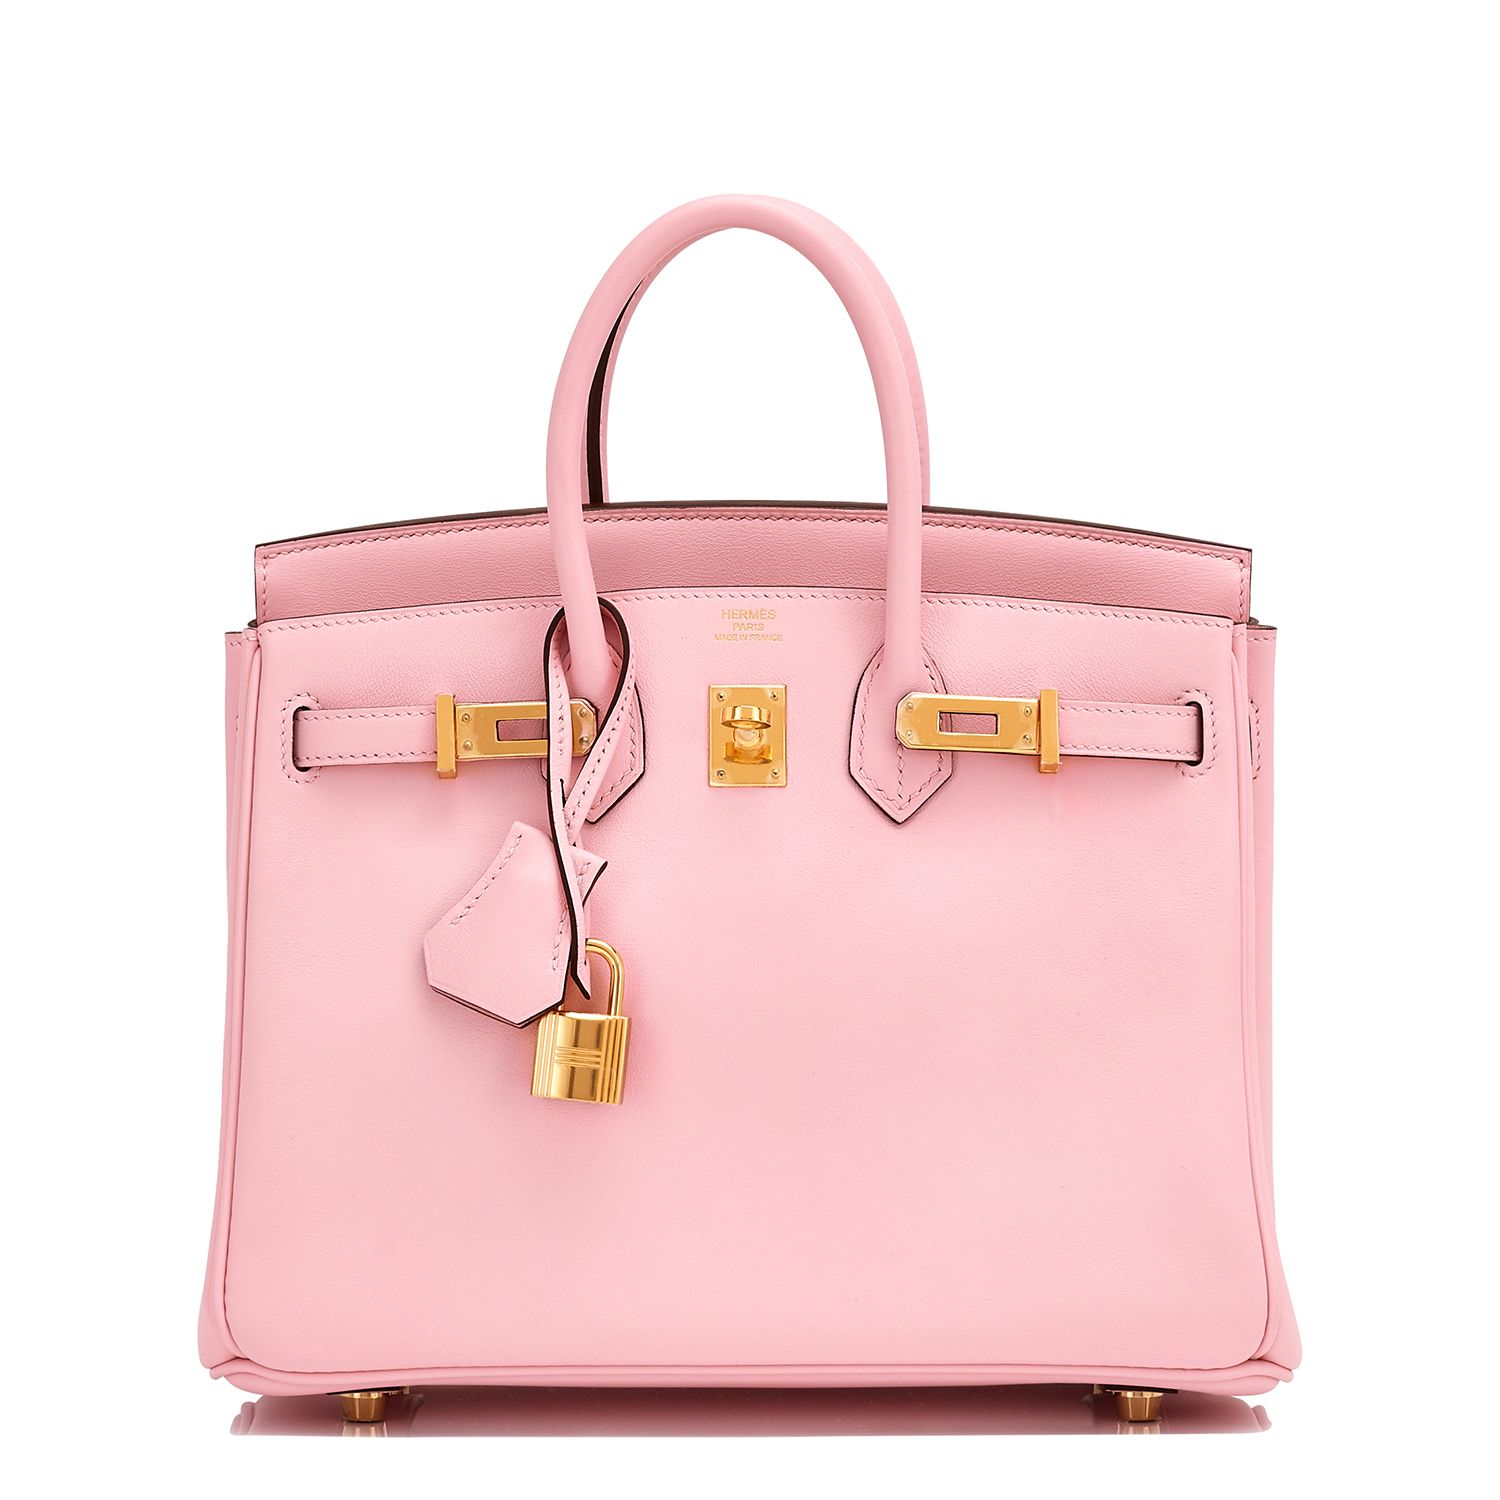 126a1a1d62a0 Hermes  Birkin  Bag Rose Sakura Swift Gold Hardware